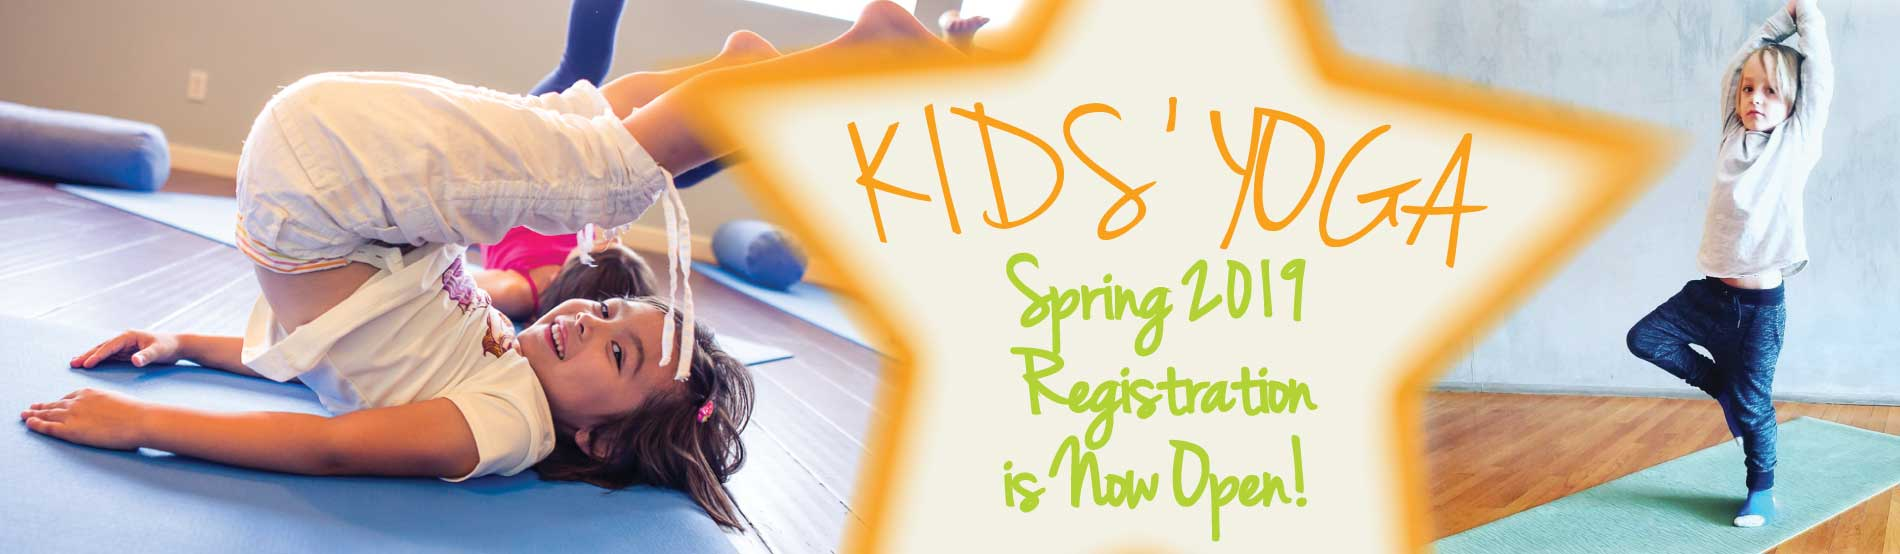 Kids Yoga Spring Registration at Coolidge Yoga